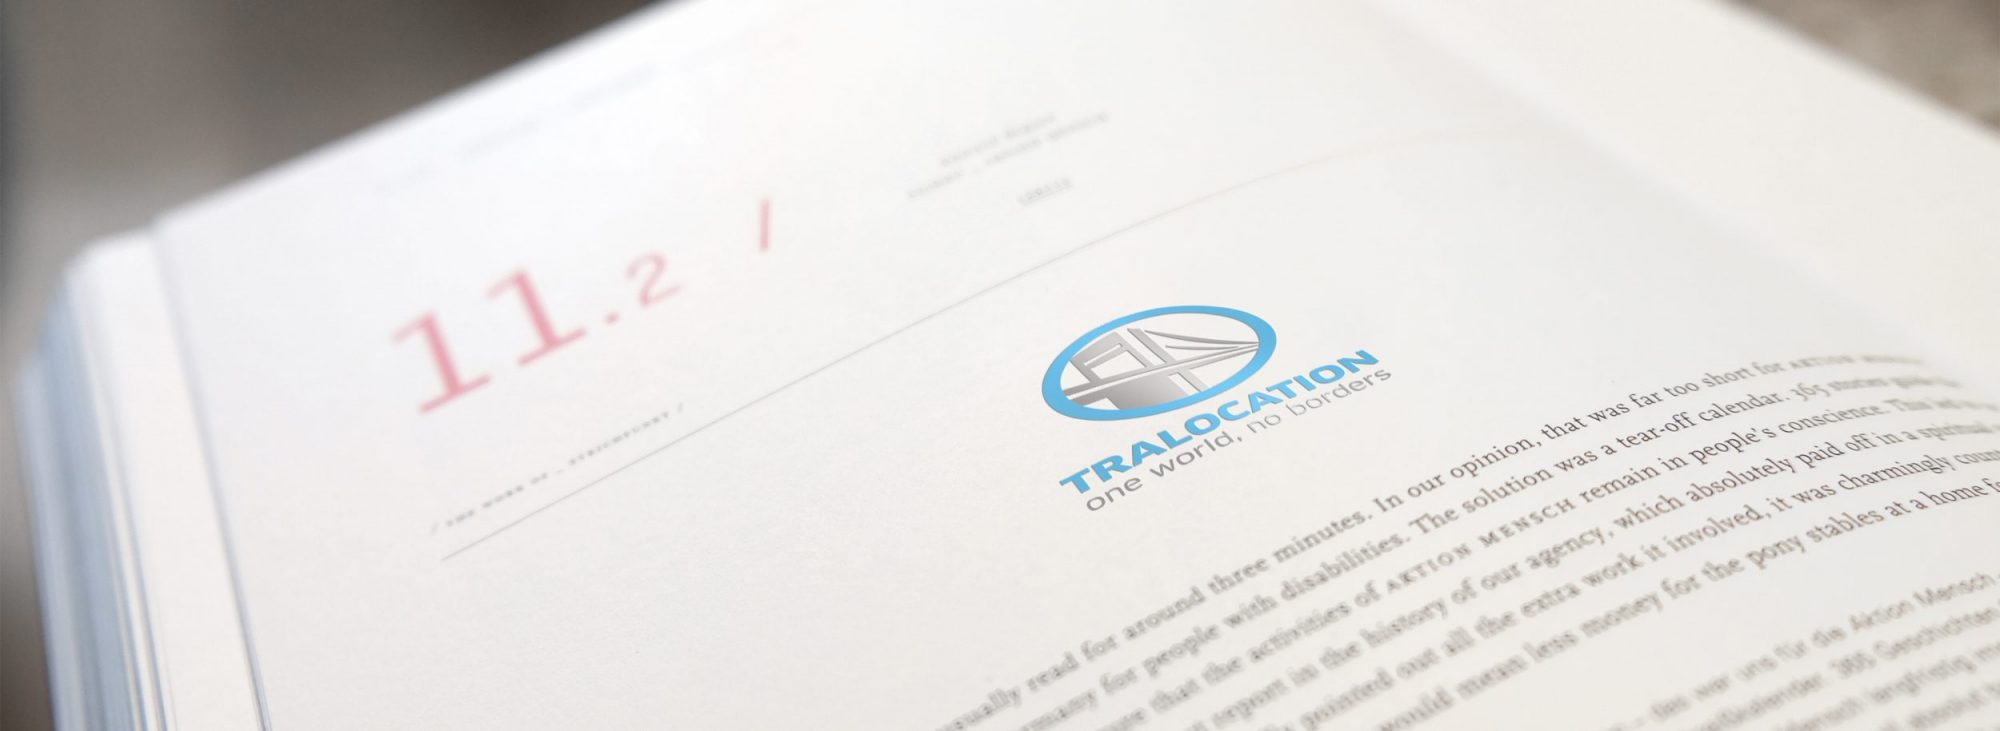 Tralocation GmbH - Header 01